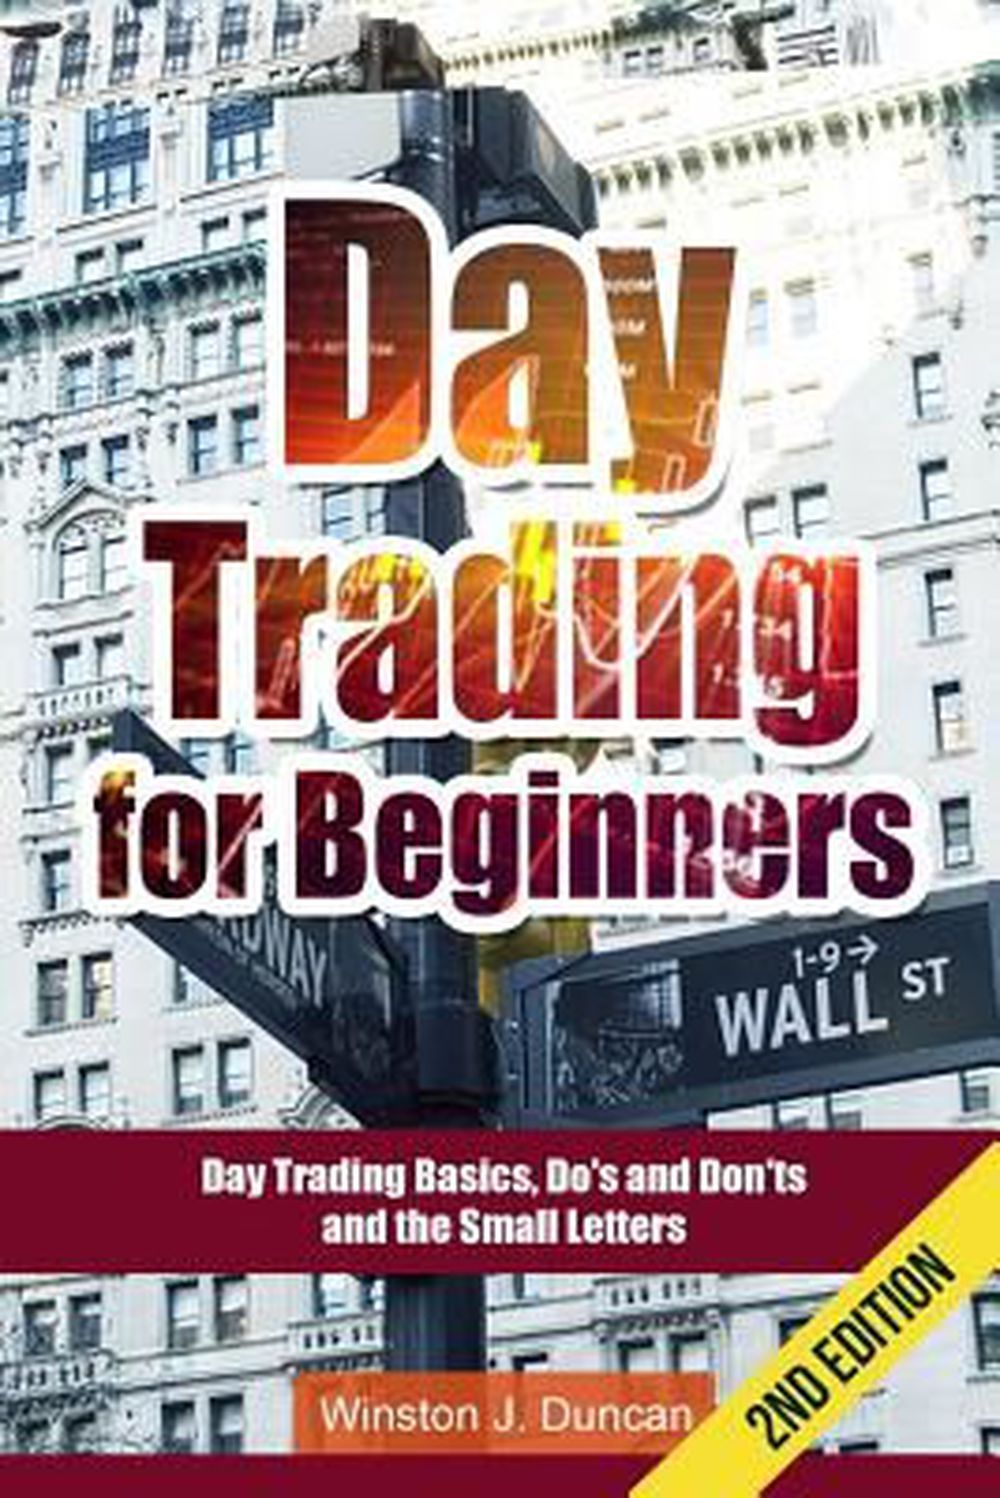 Day Trading: Day Trading for Beginners – Options Trading and Stock Trading Expla